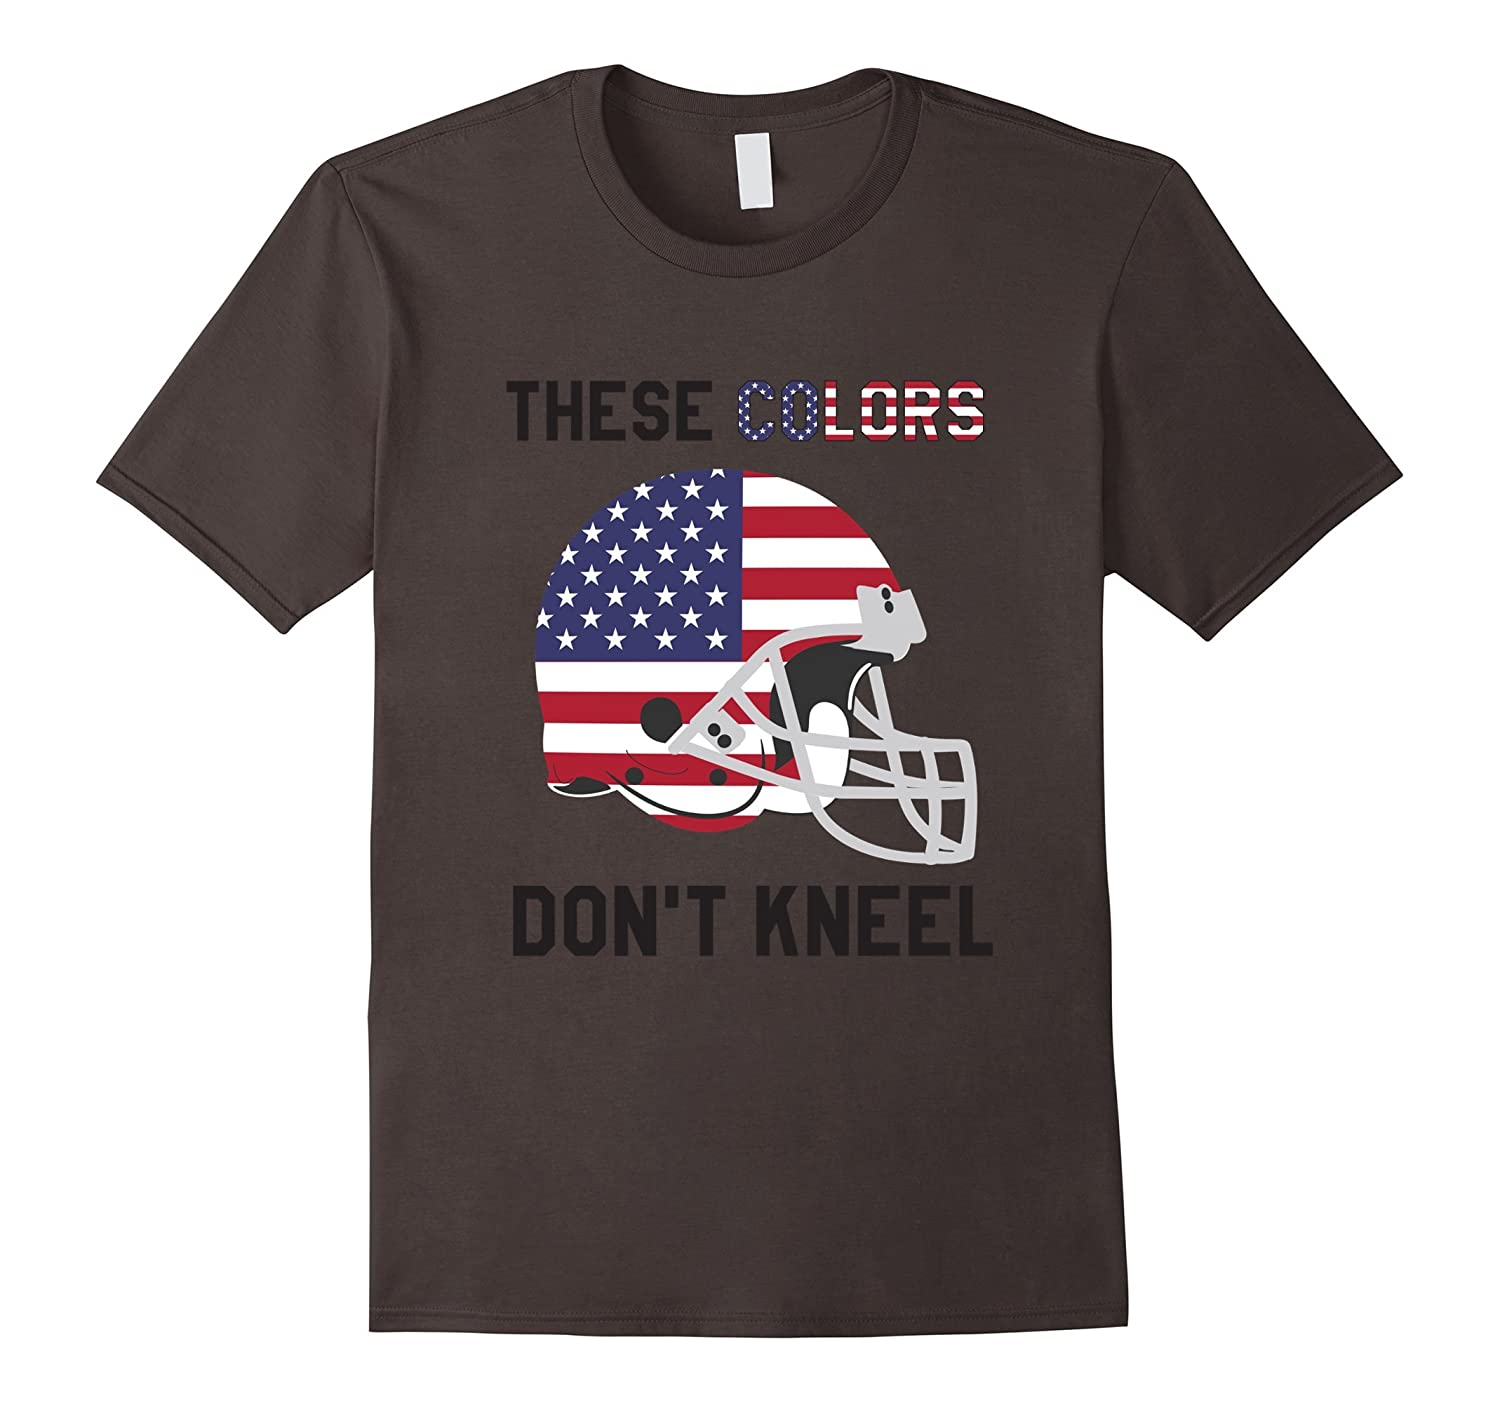 Flag Protest Anthem T-shirt These Colors Don't Kneel Tshirt-BN